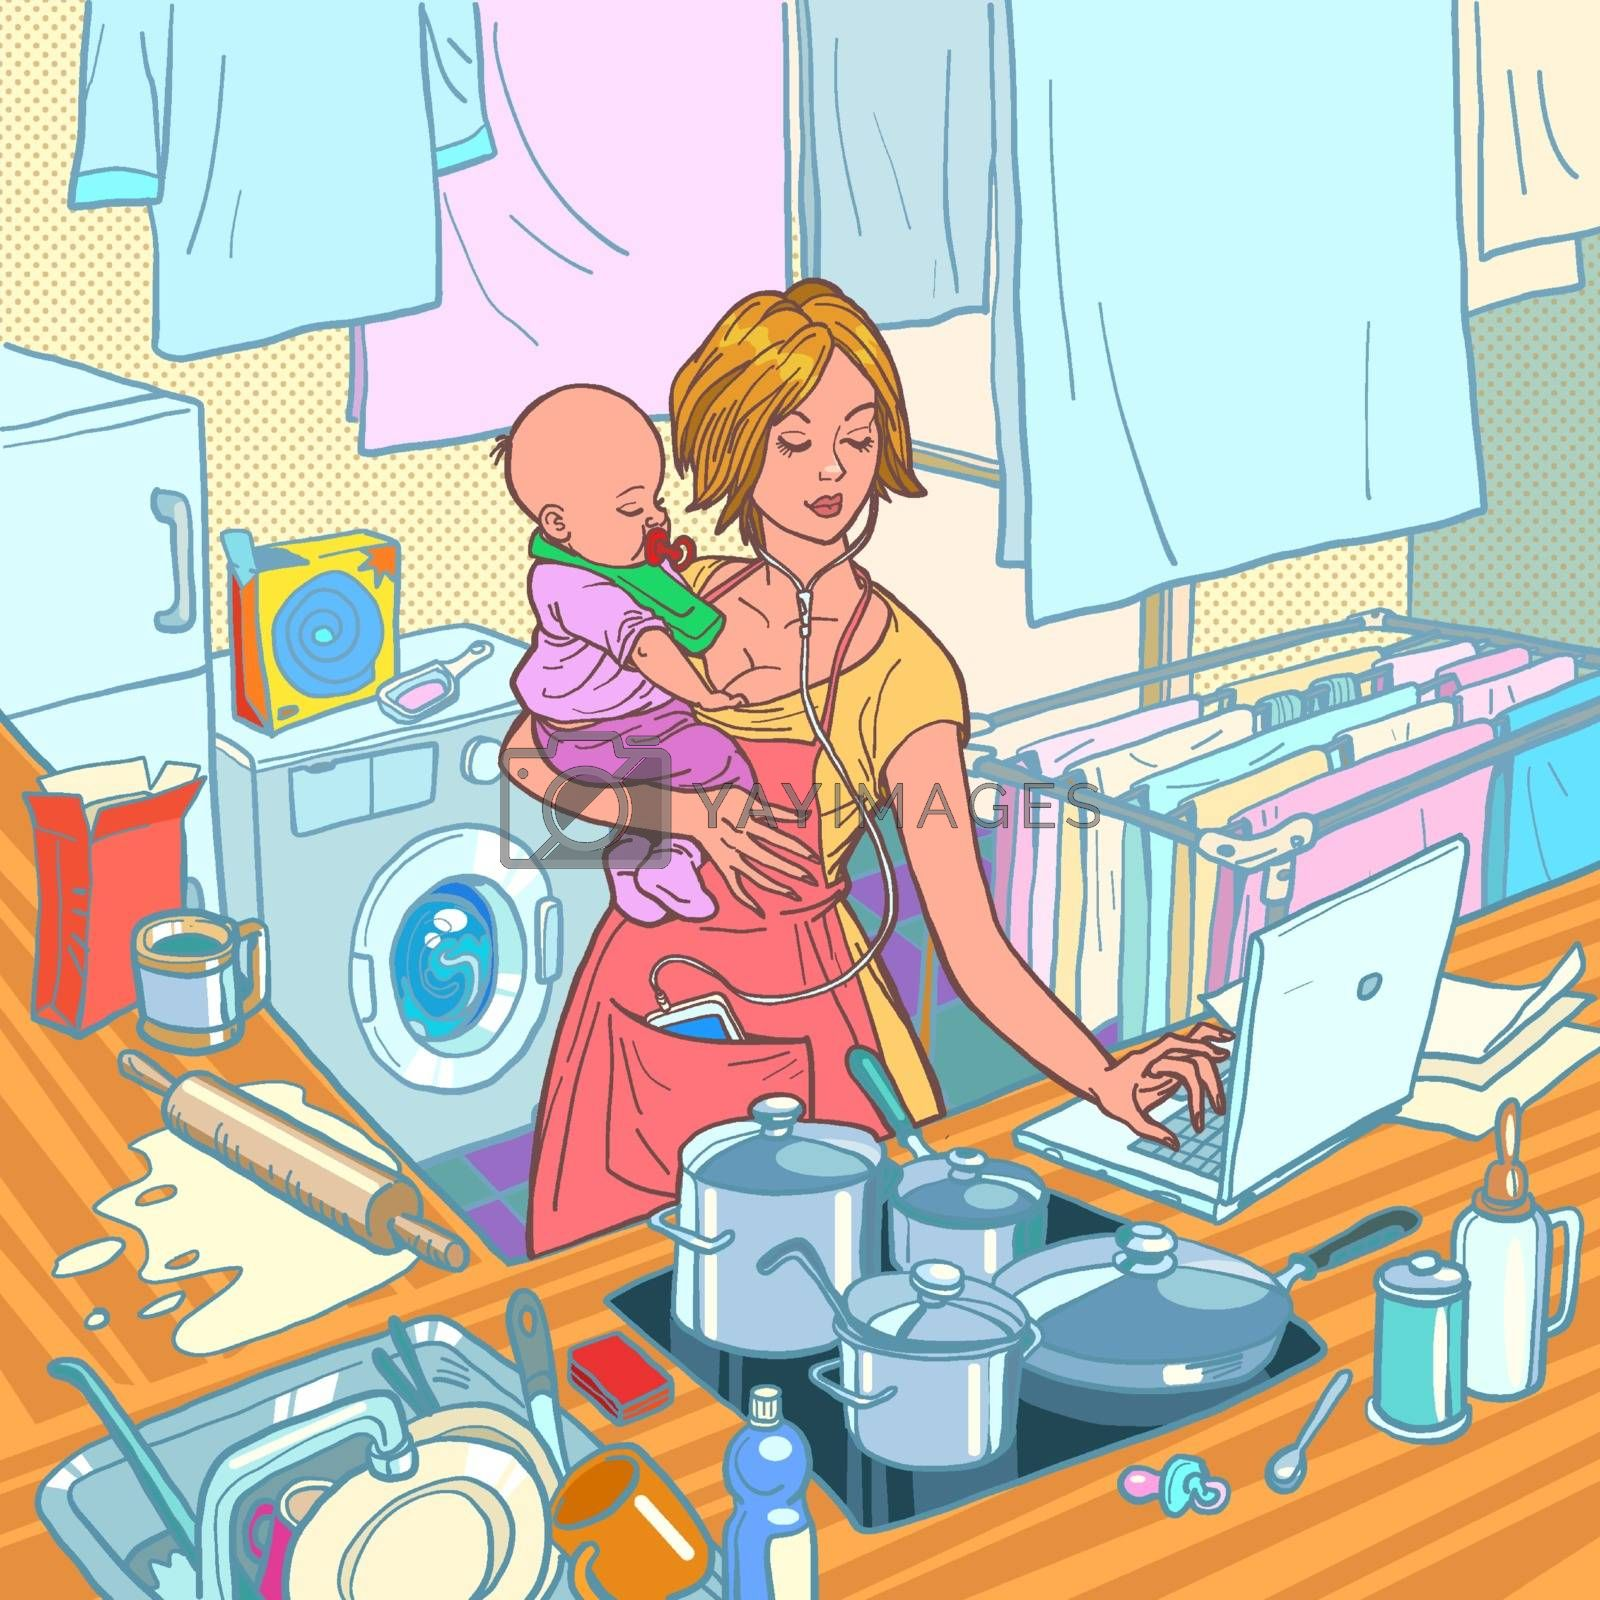 Modern mother with child. Remote work and household chores. Kitchen, cooking, washing, laptop computer, listening to music. Caring for infants. Comic cartoon pop art retro vector illustration drawing